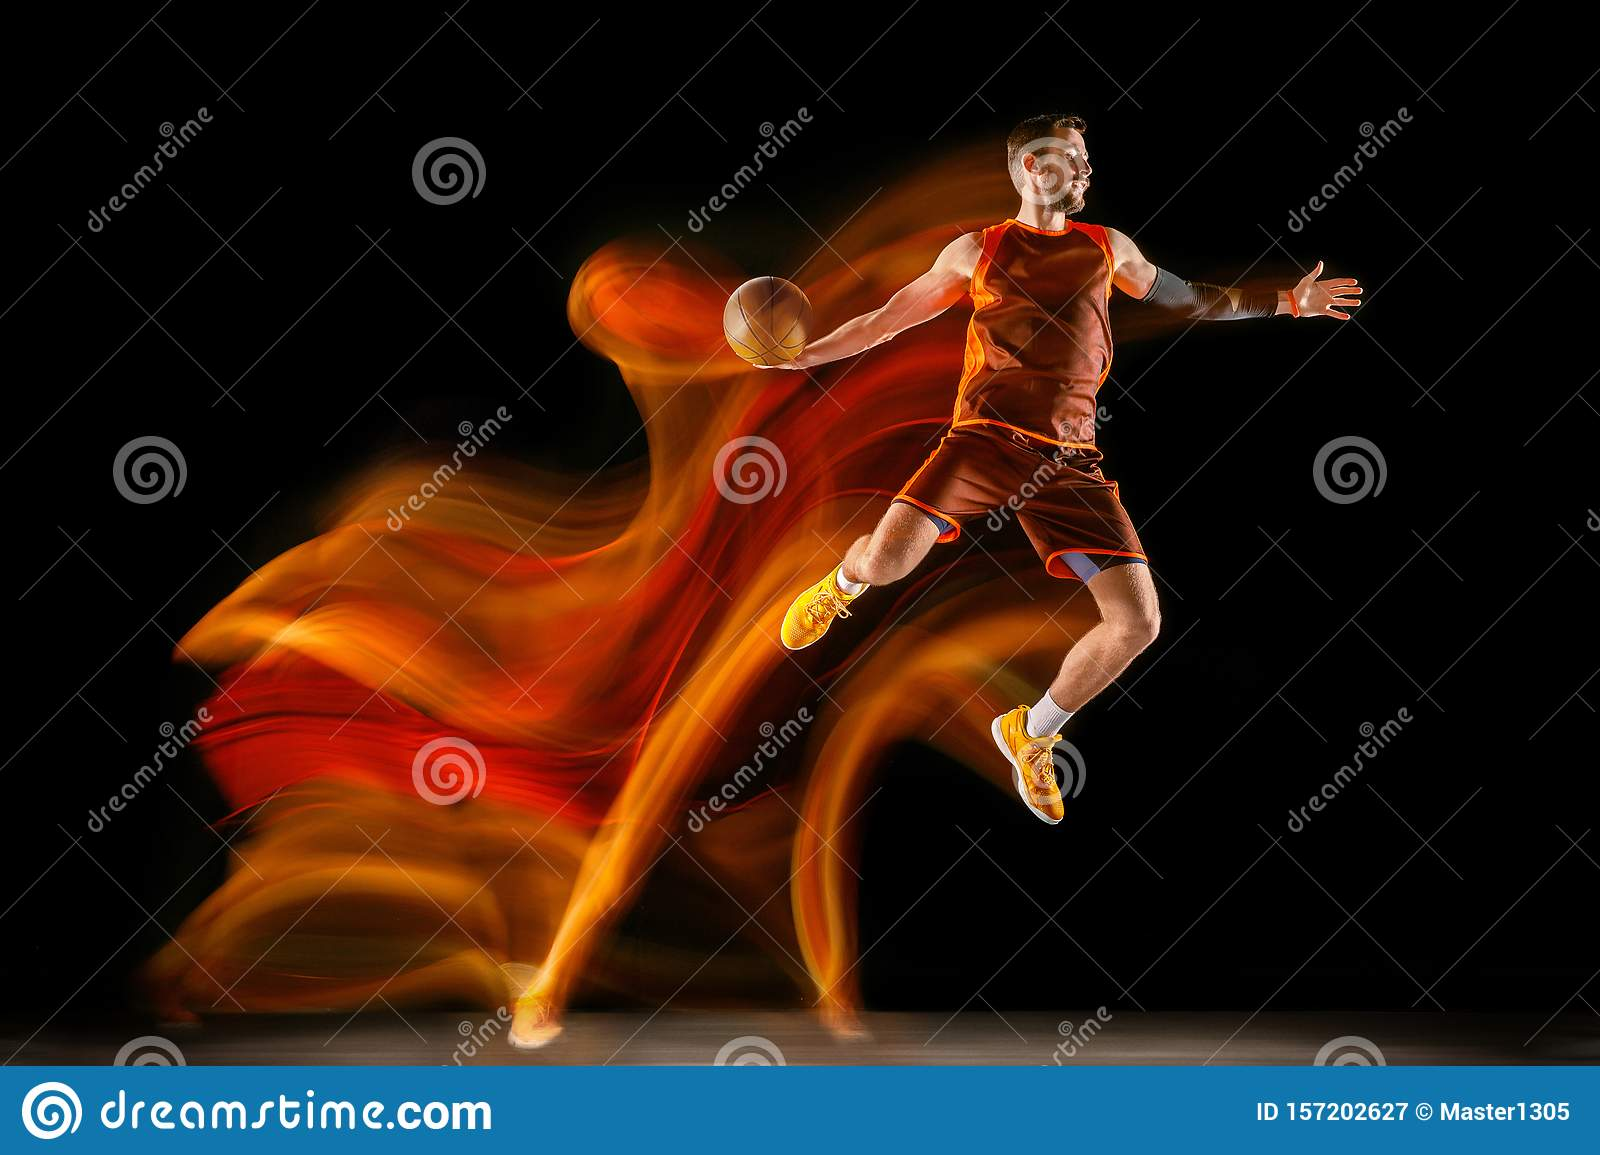 Young caucasian basketball player against dark background in mixed light